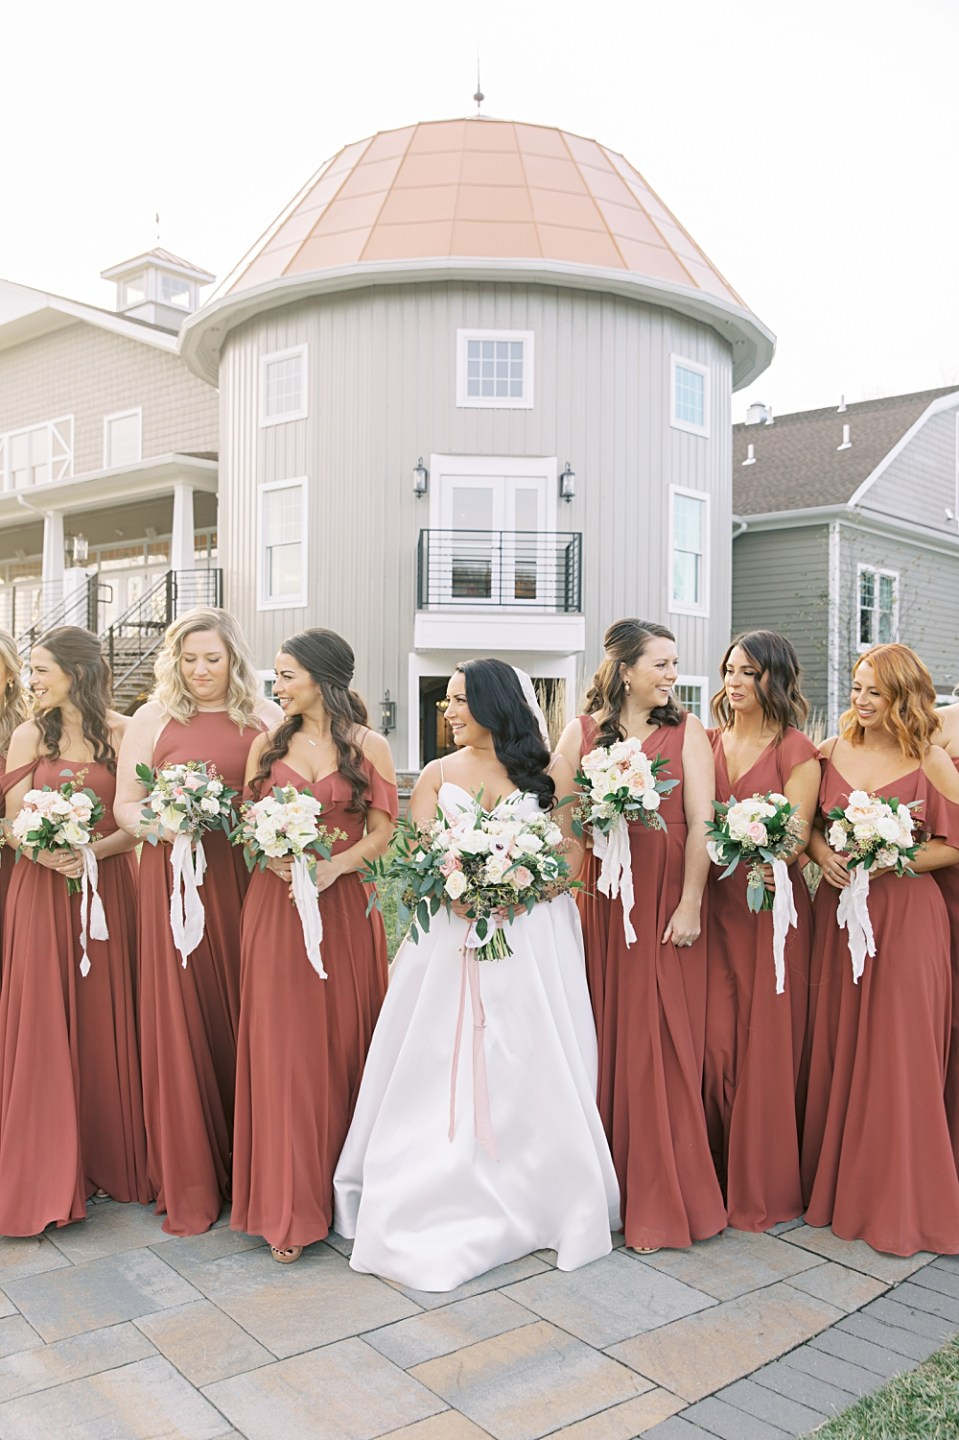 dusty rose bridesmaids dresses by bella bridesmaids | Jenny Yoo | Wedding photographer sarah canning